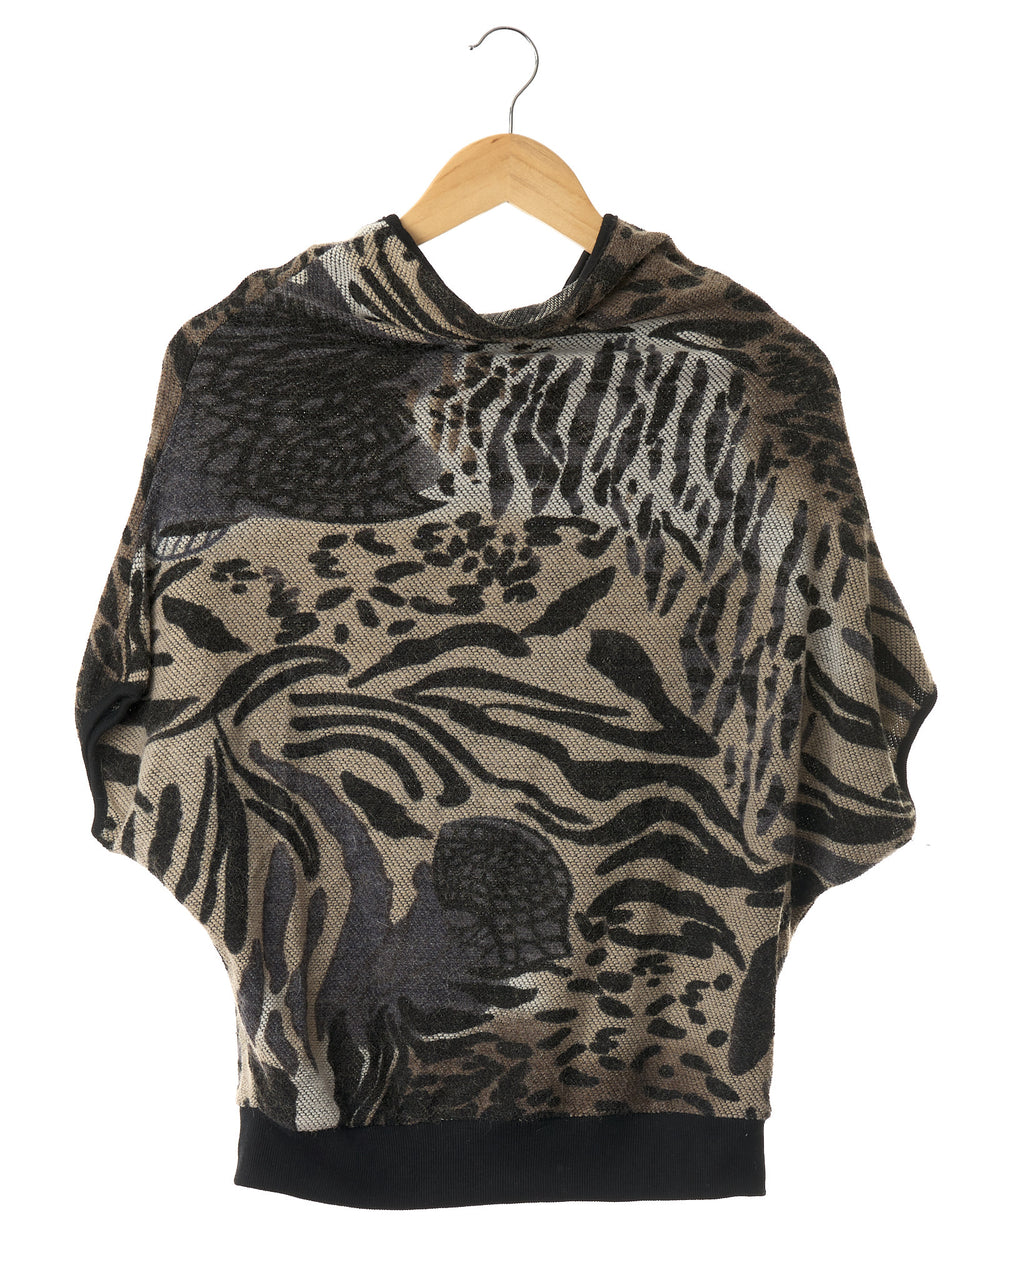 Vintage Animal Print Knit Top